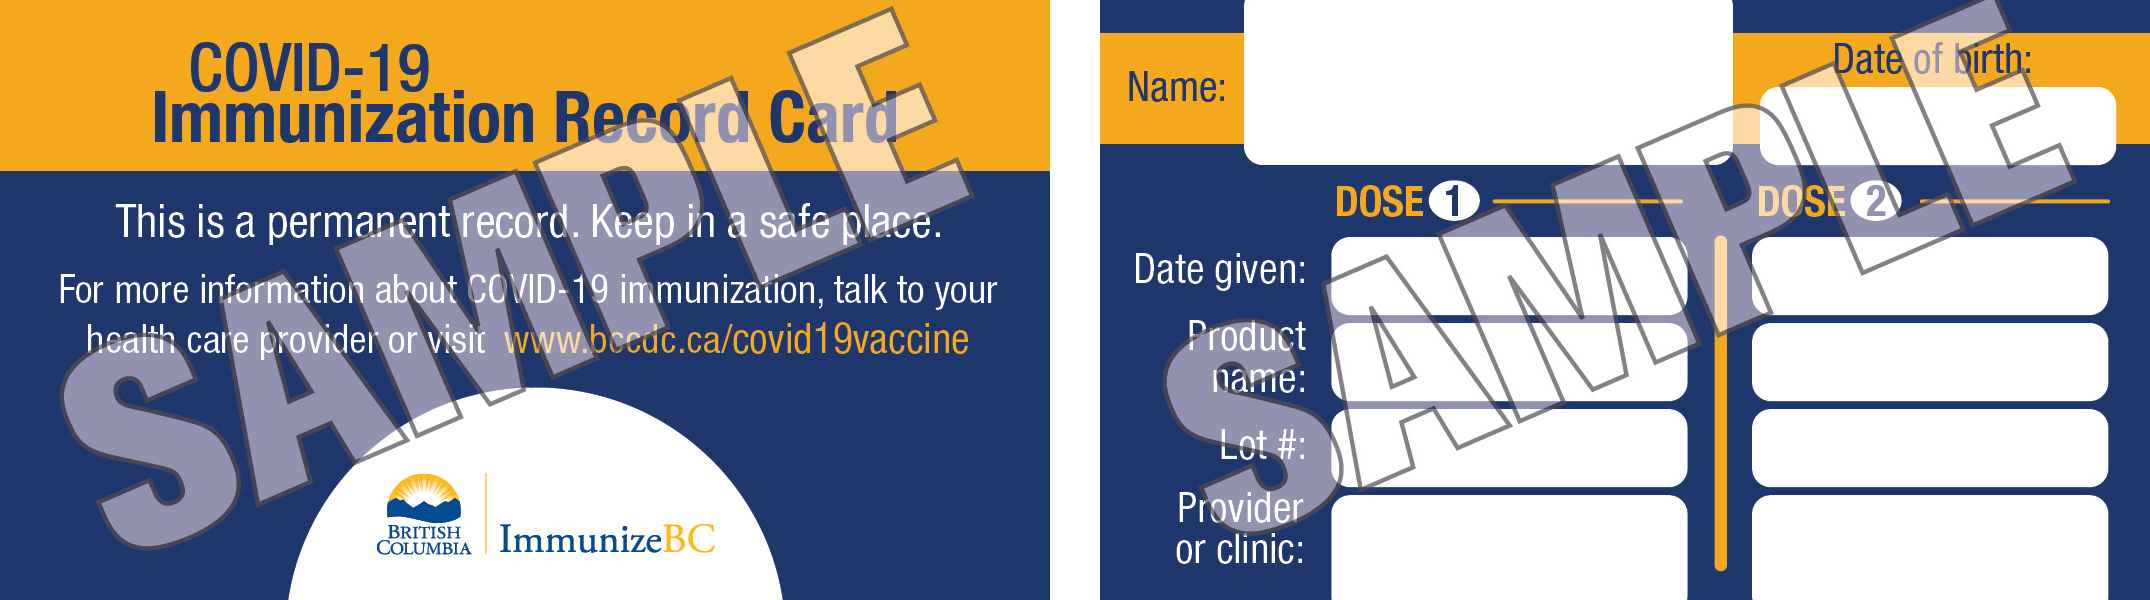 bccdc-covid-vaccination-card-sample-both